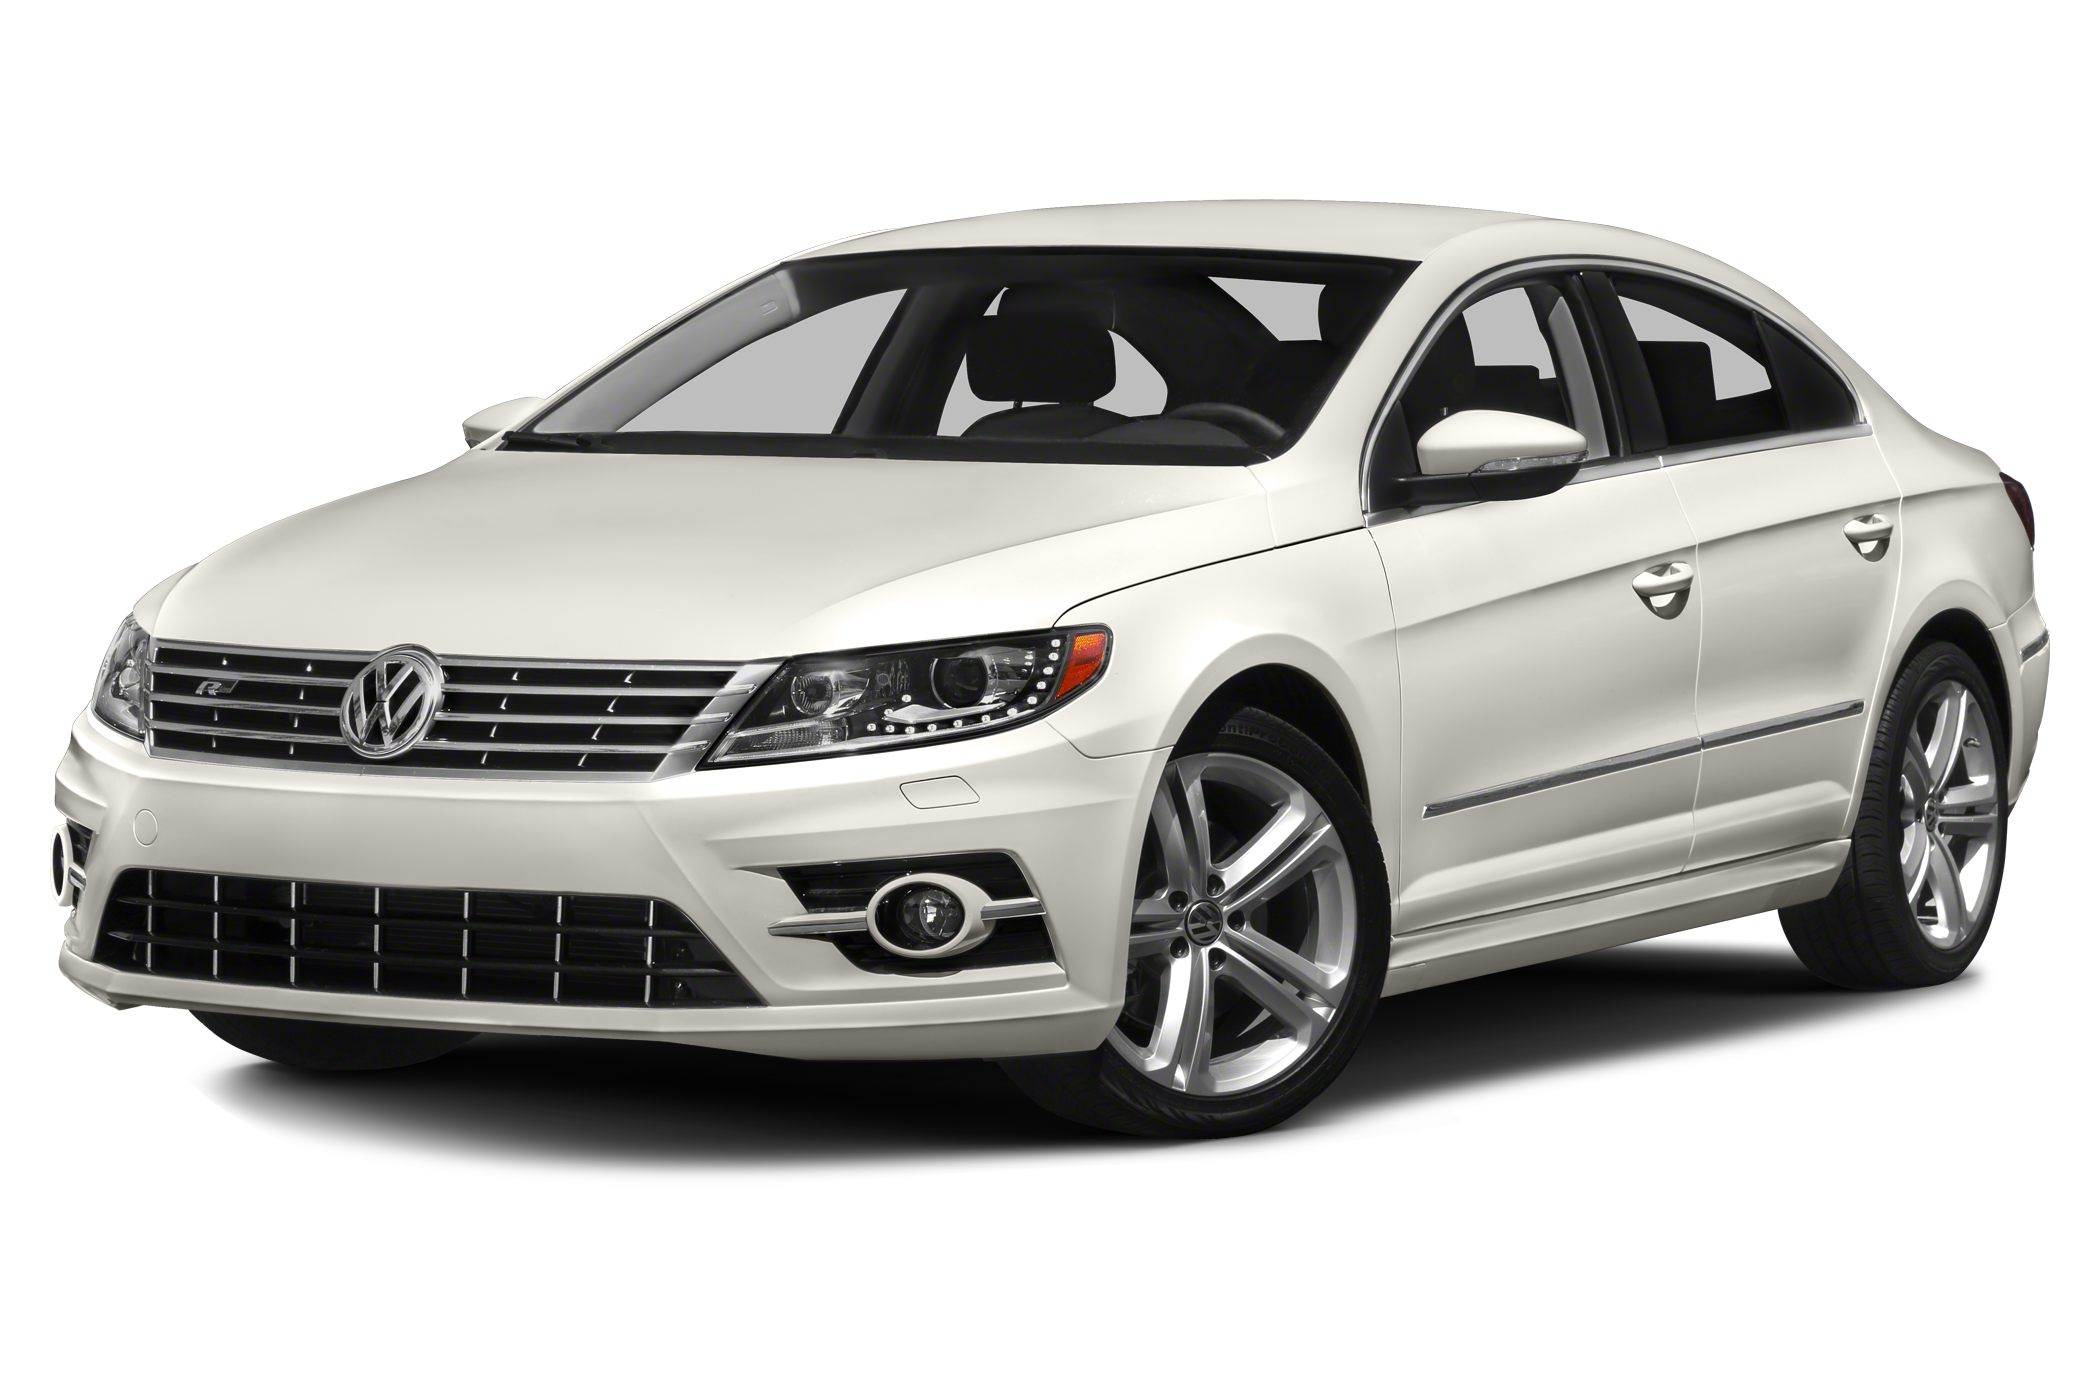 2013 Volkswagen CC 20T R-Line For more information on this vehiclePlease call Teresa in the Inte